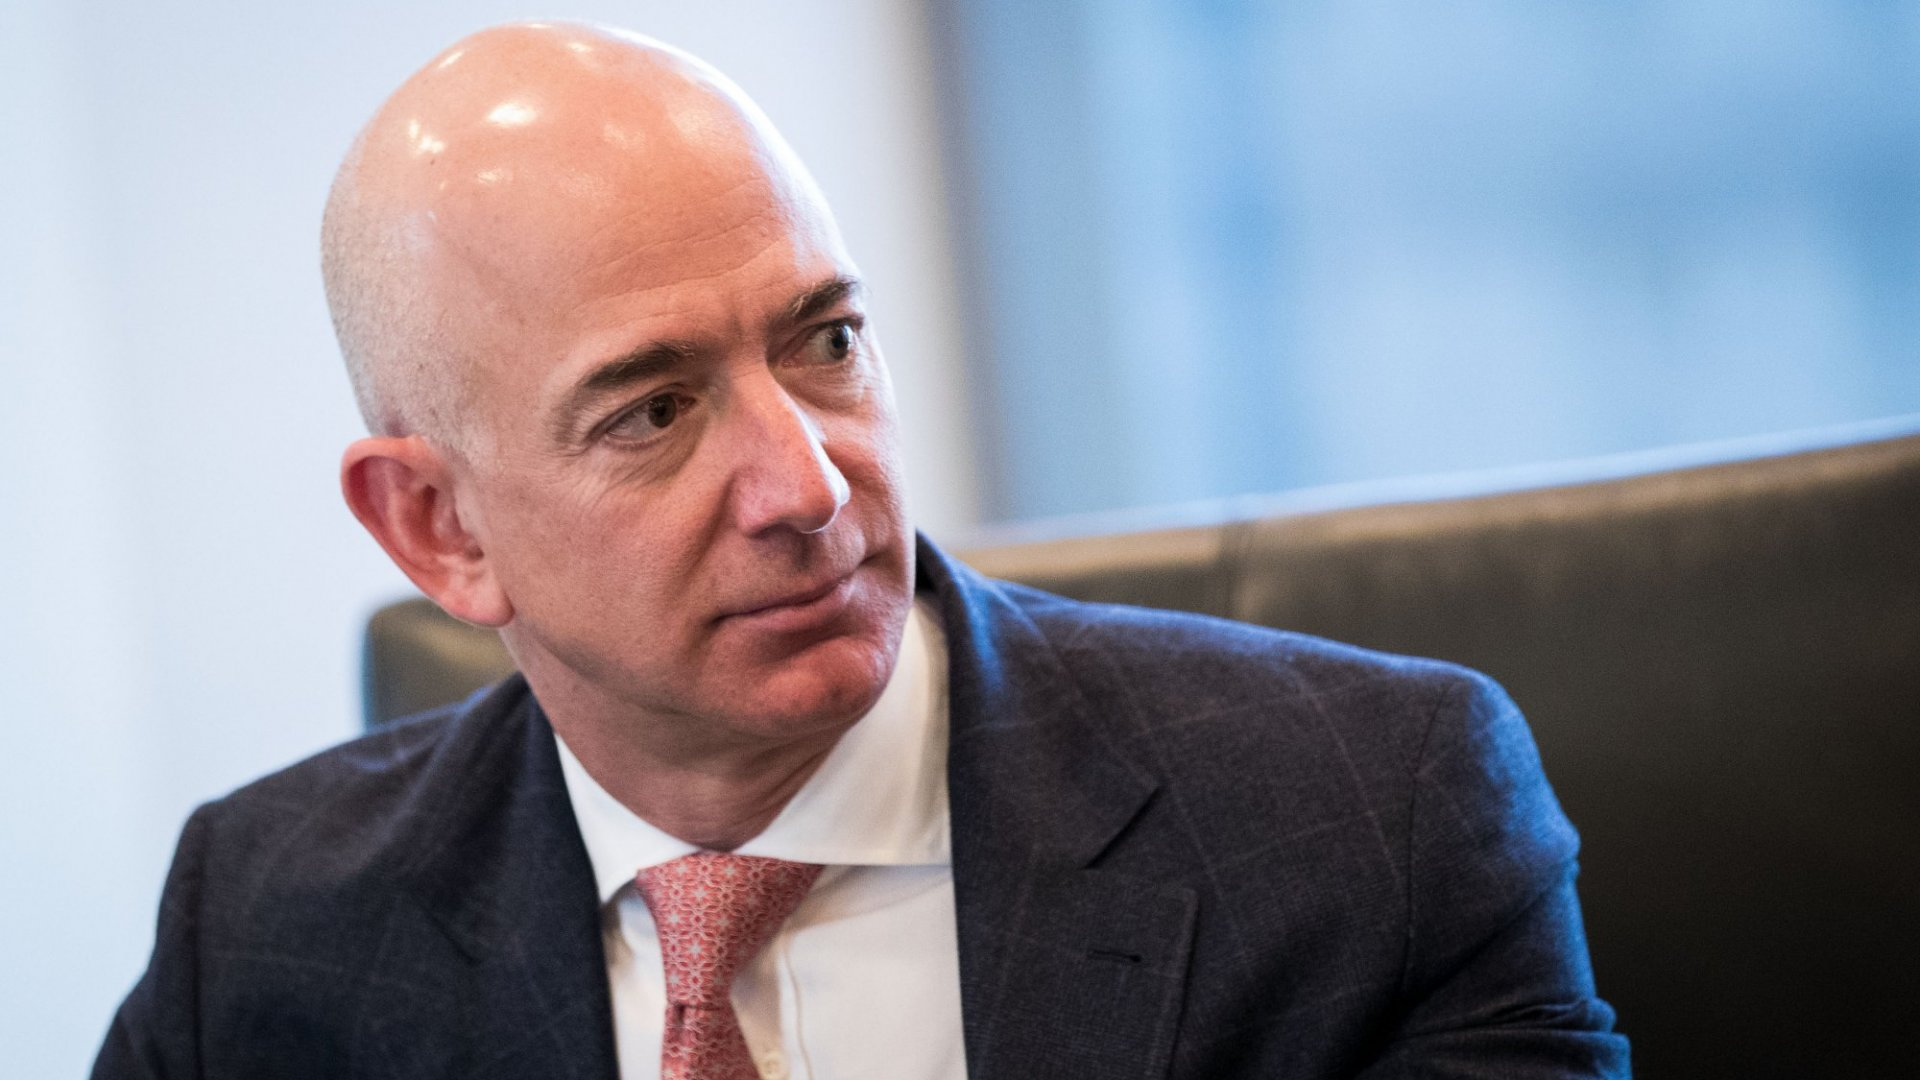 5 Simple Words But 1 Powerful Piece of Jeff Bezos Advice